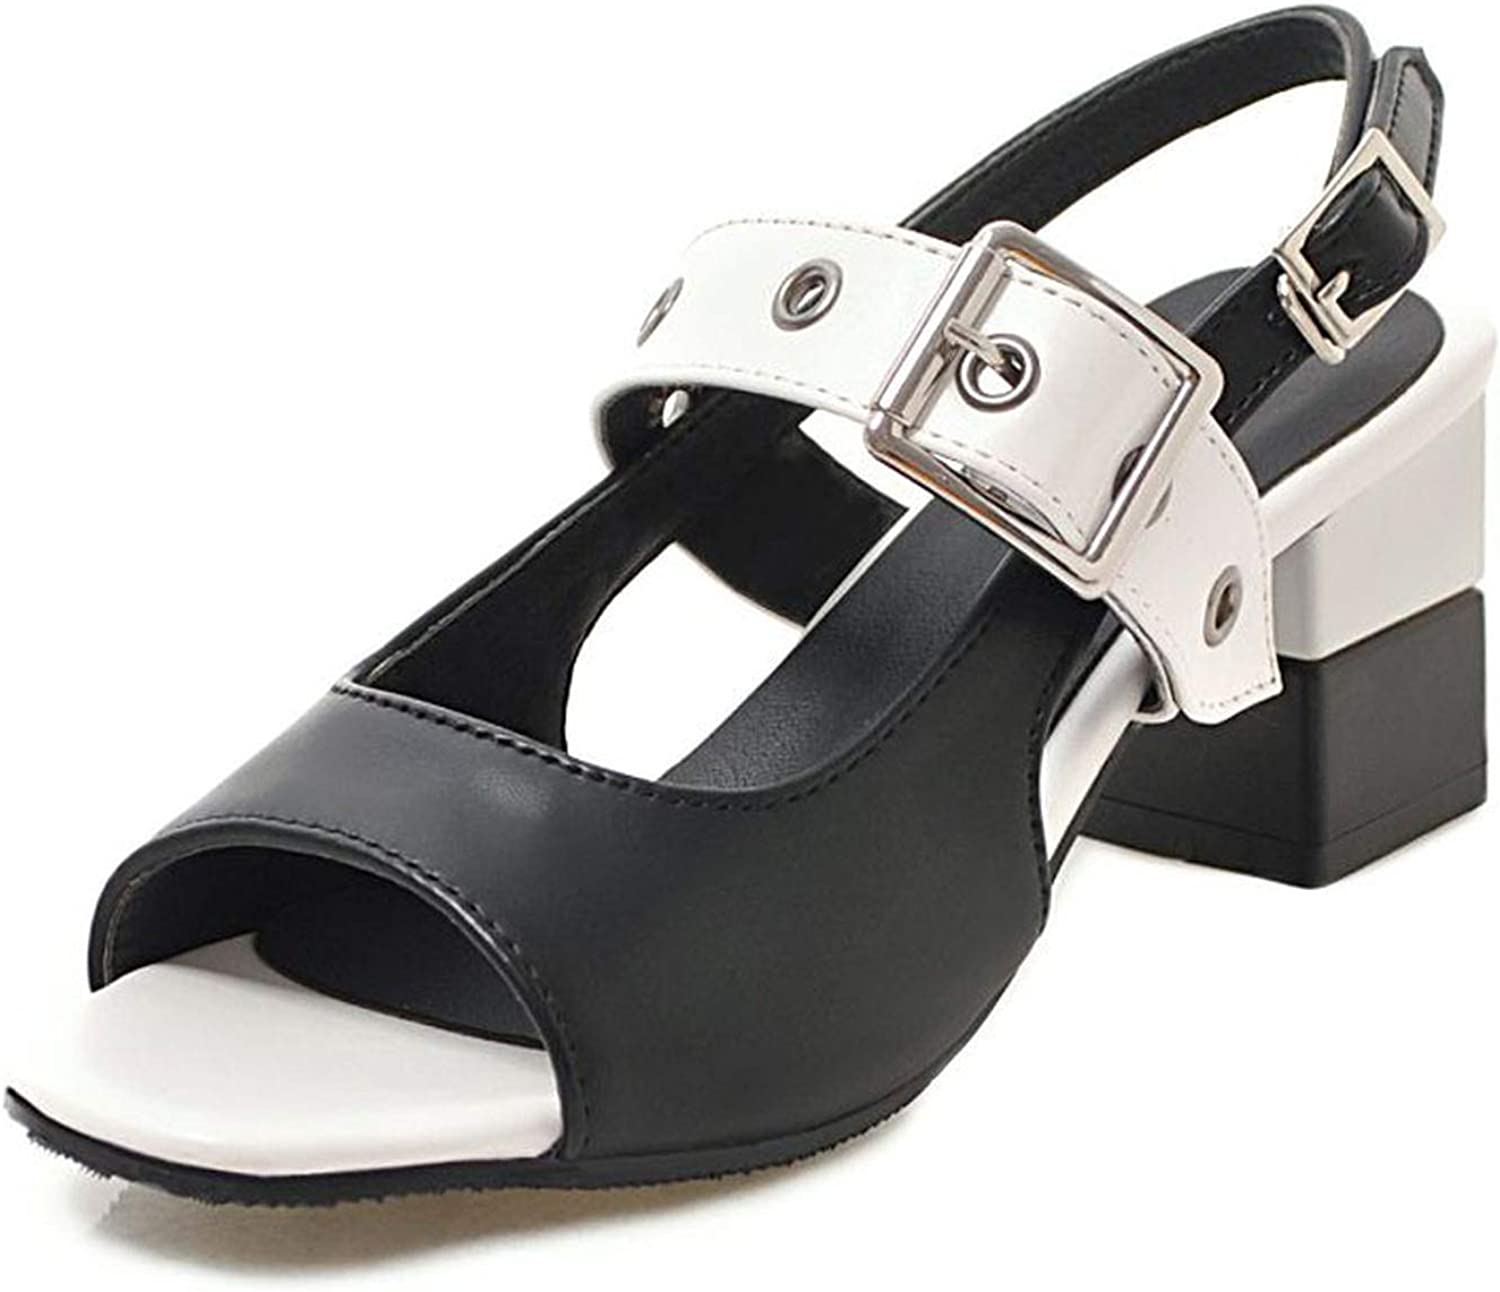 Women Mixed colors Metal Buckle Spring Fashion Sandals Party Office Ladies Club Summer shoes Women